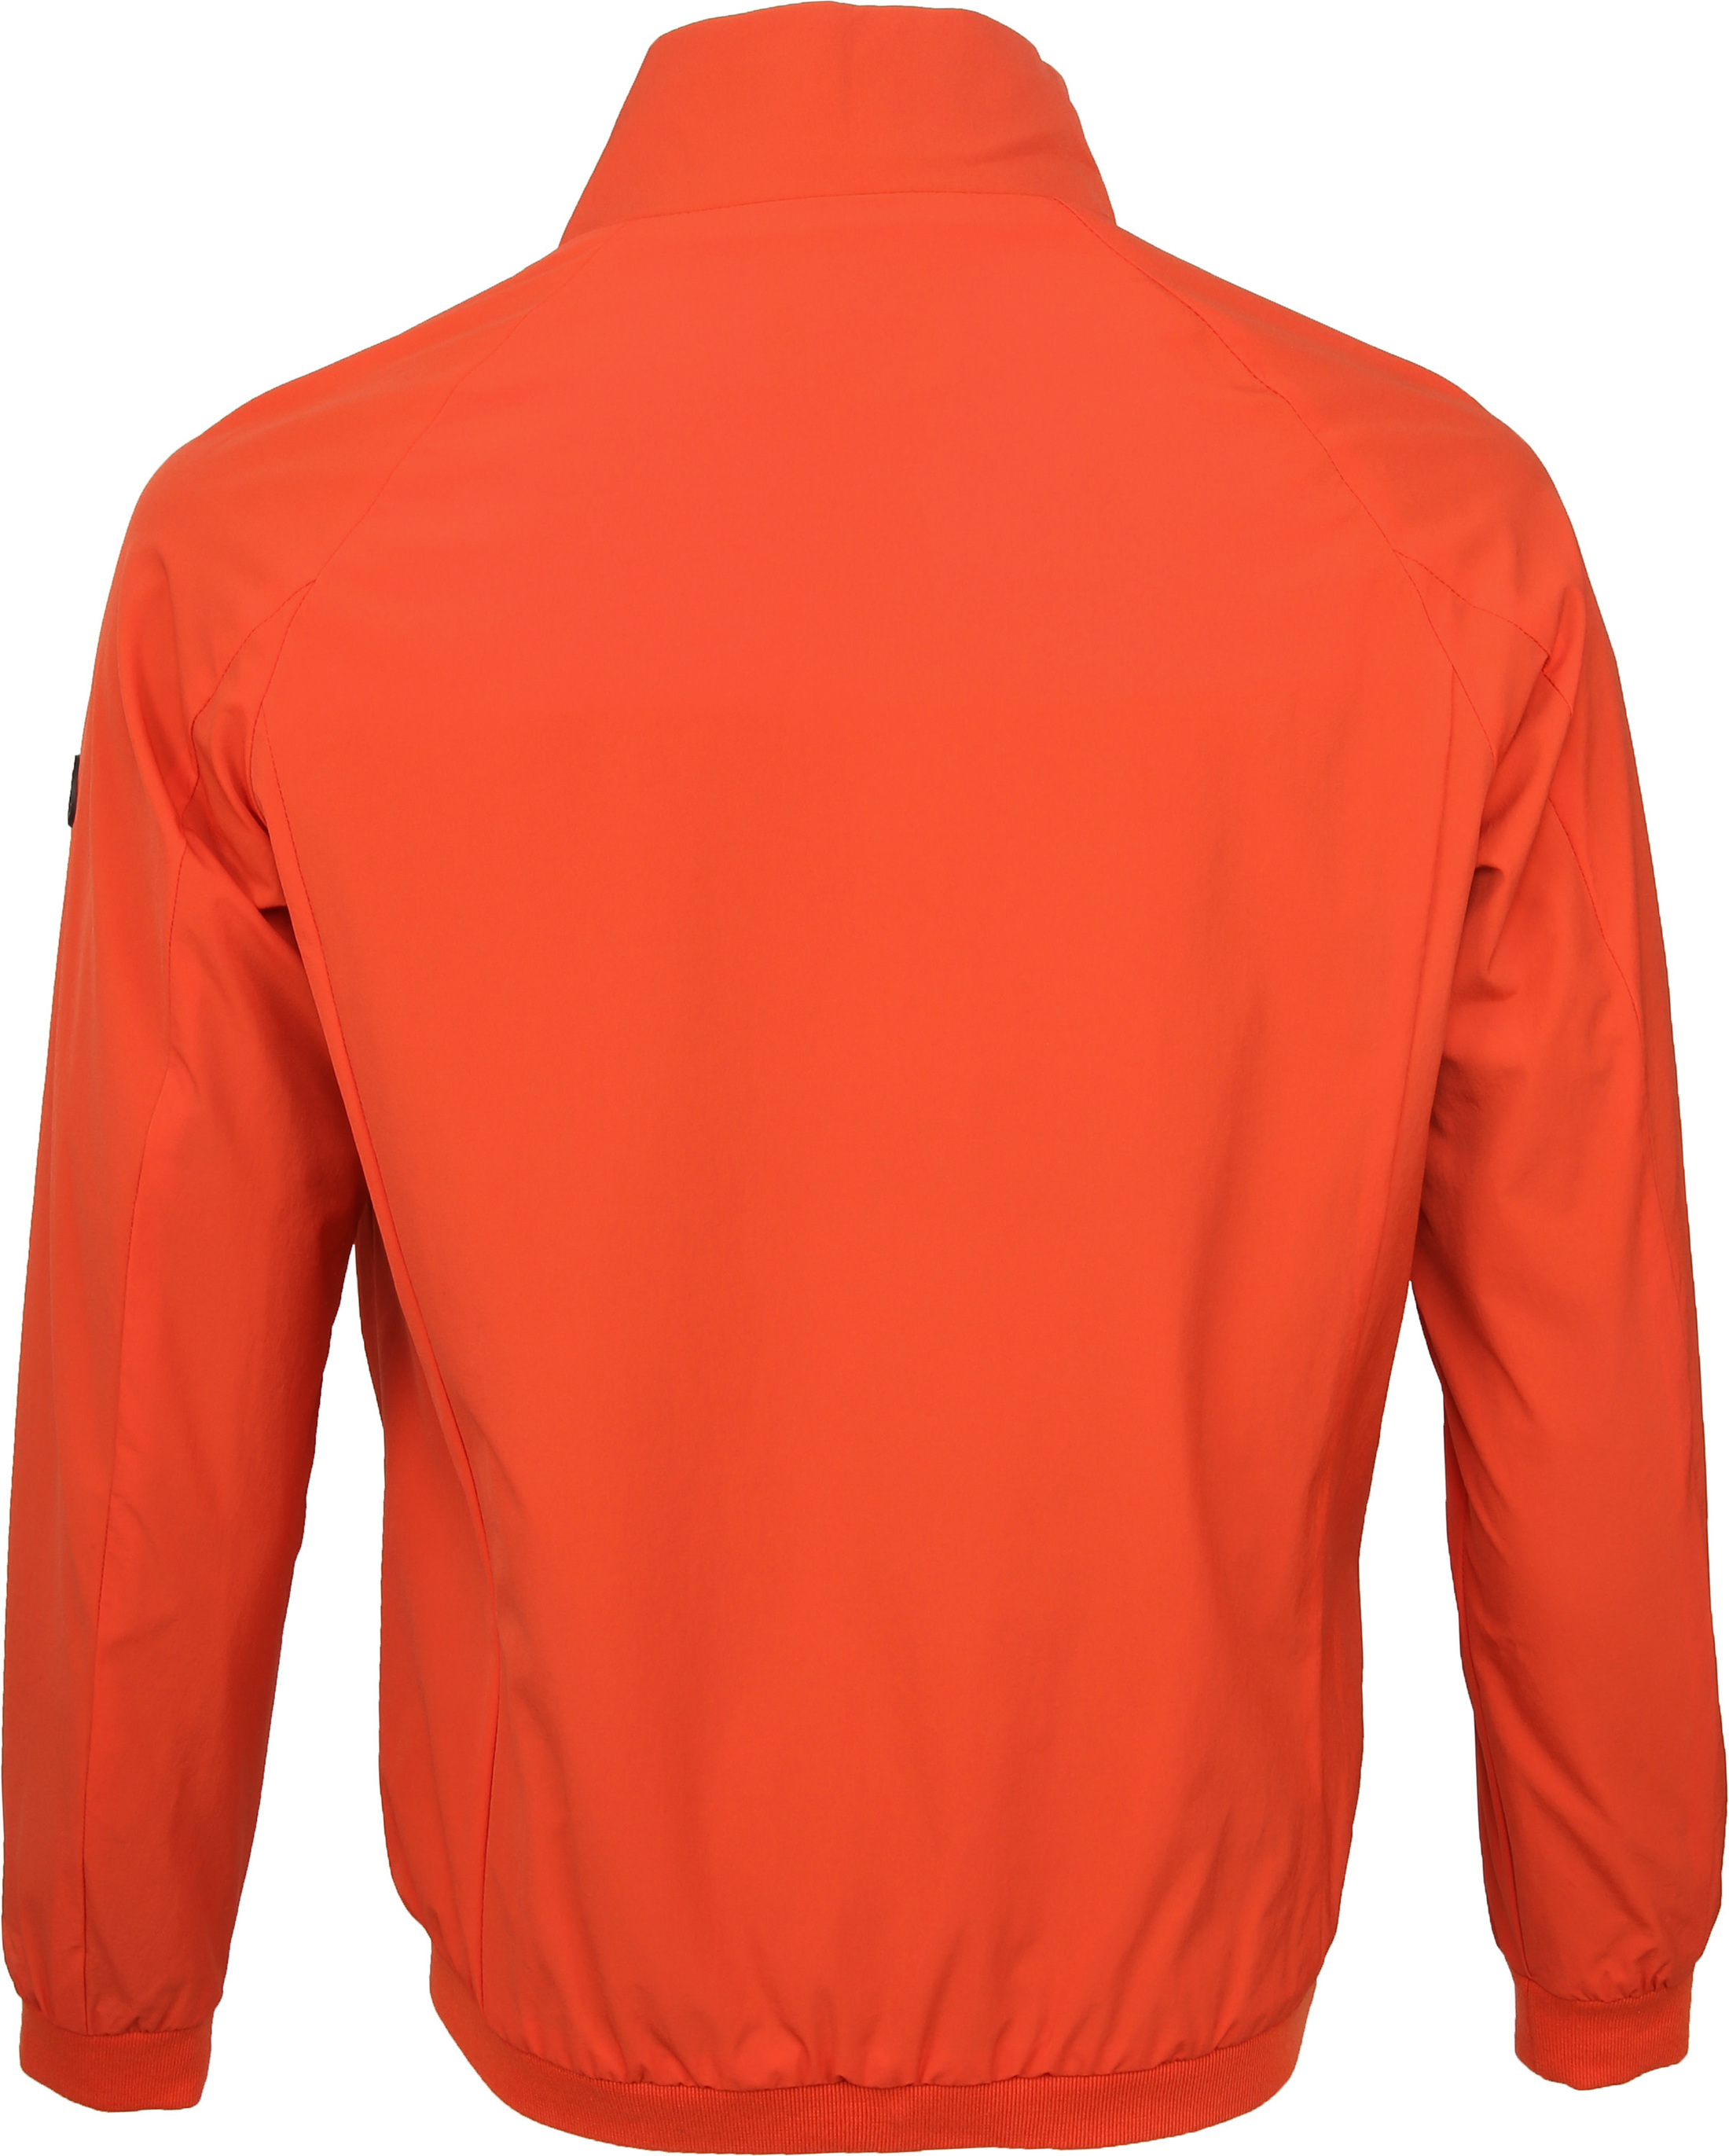 Suitable Jacket Rich Orange foto 4